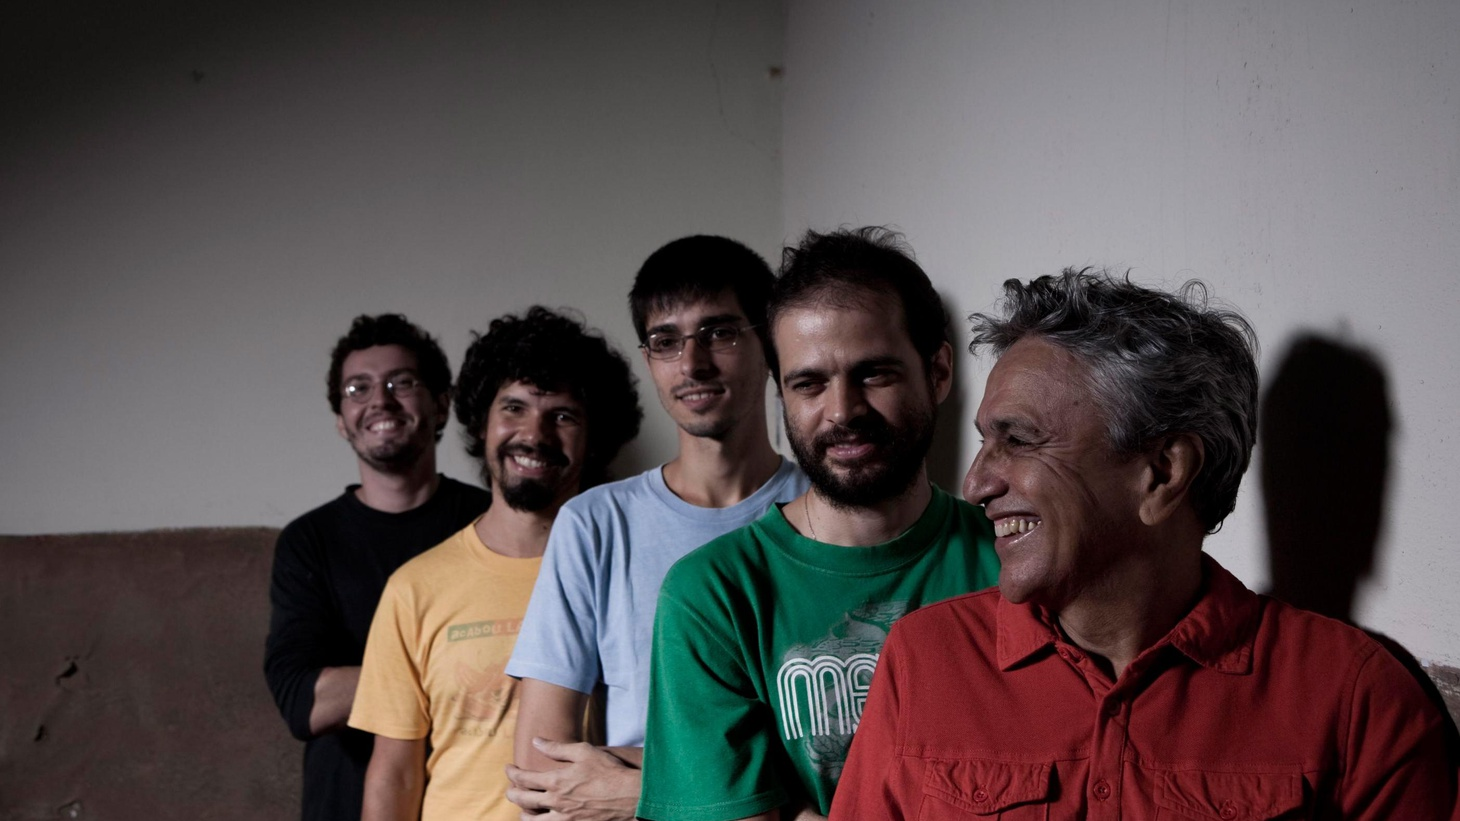 Caetano Veloso's latest album spotlights a timeless entertainer's fantastic work. It fuses traditional Tropicalia style and the current sound of Rio's indie pop landscape.